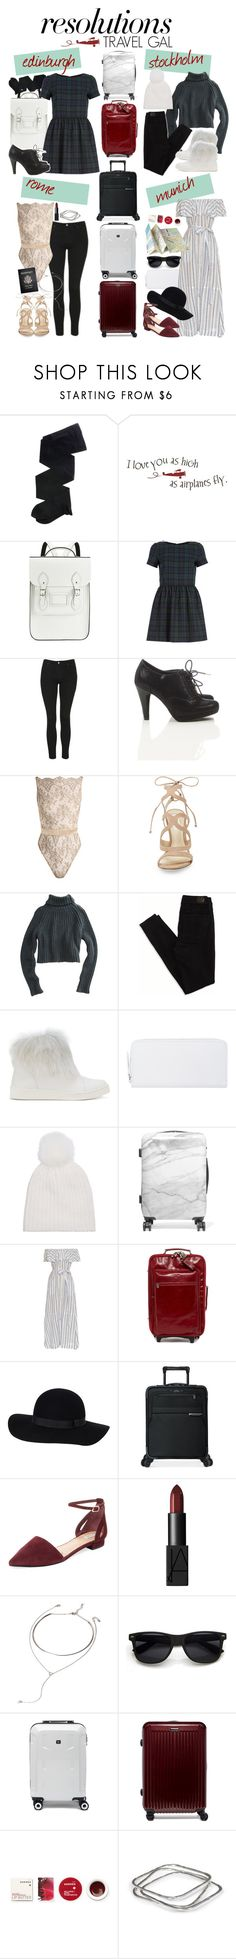 """#PolyPresents: New Year's Resolutions"" by veterization ❤ liked on Polyvore featuring Gerbe, The Cambridge Satchel Company, River Island, Topshop, Wallis, Coco de Mer, Steve Madden, T By Alexander Wang, American Eagle Outfitters and Pedro García"